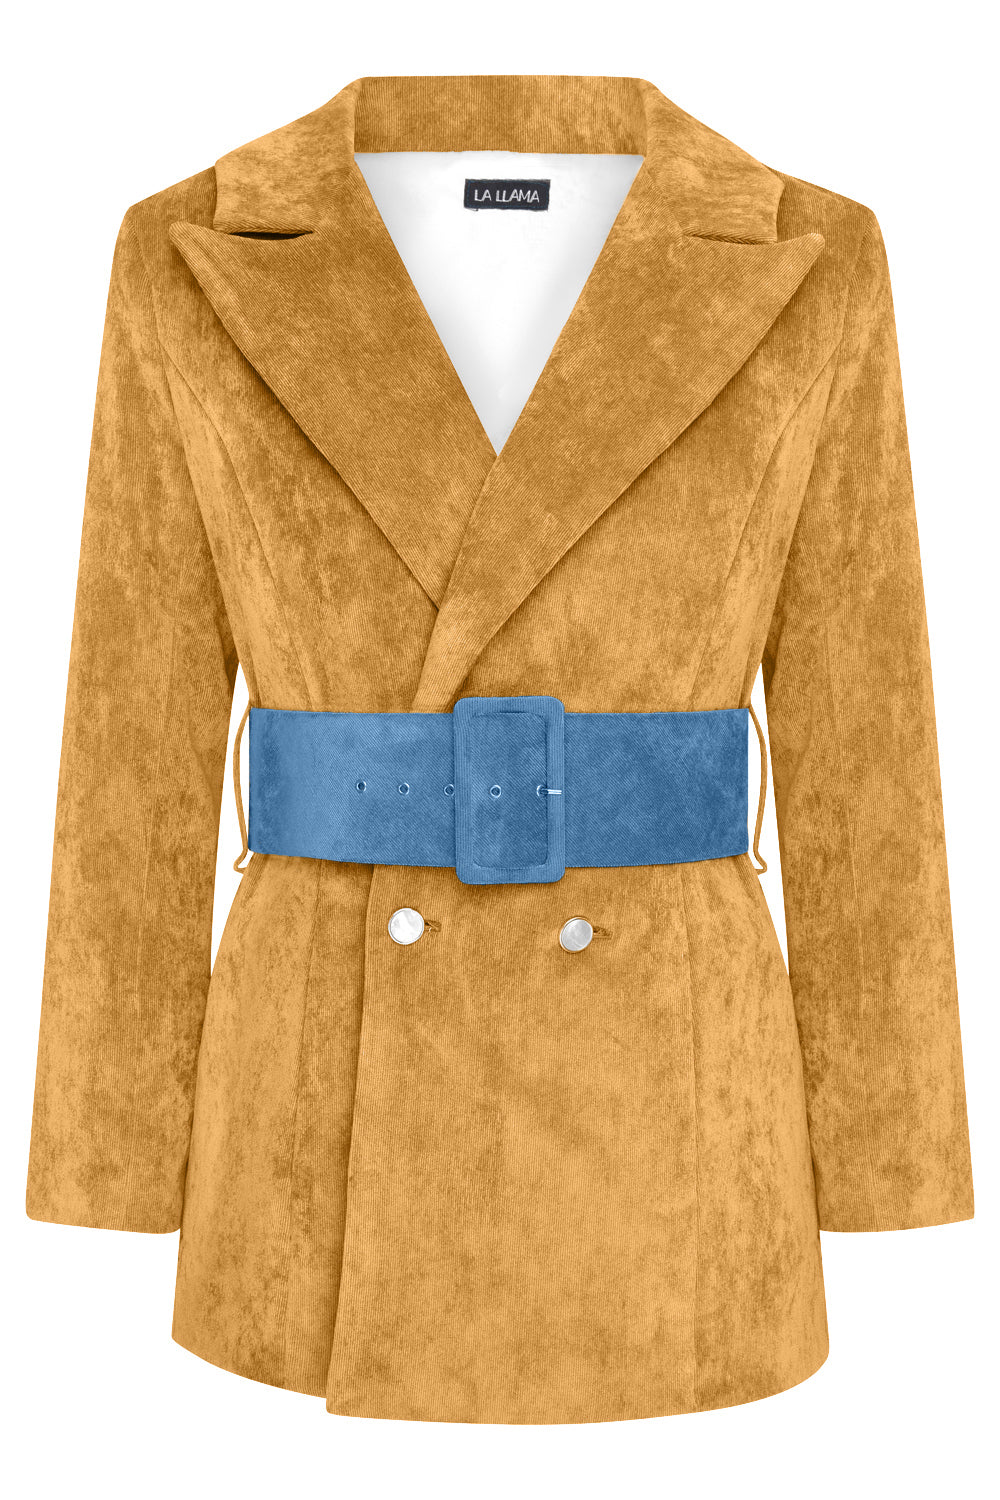 HYDRA BLAZER -  MUSTARD WITH PETROL BELT